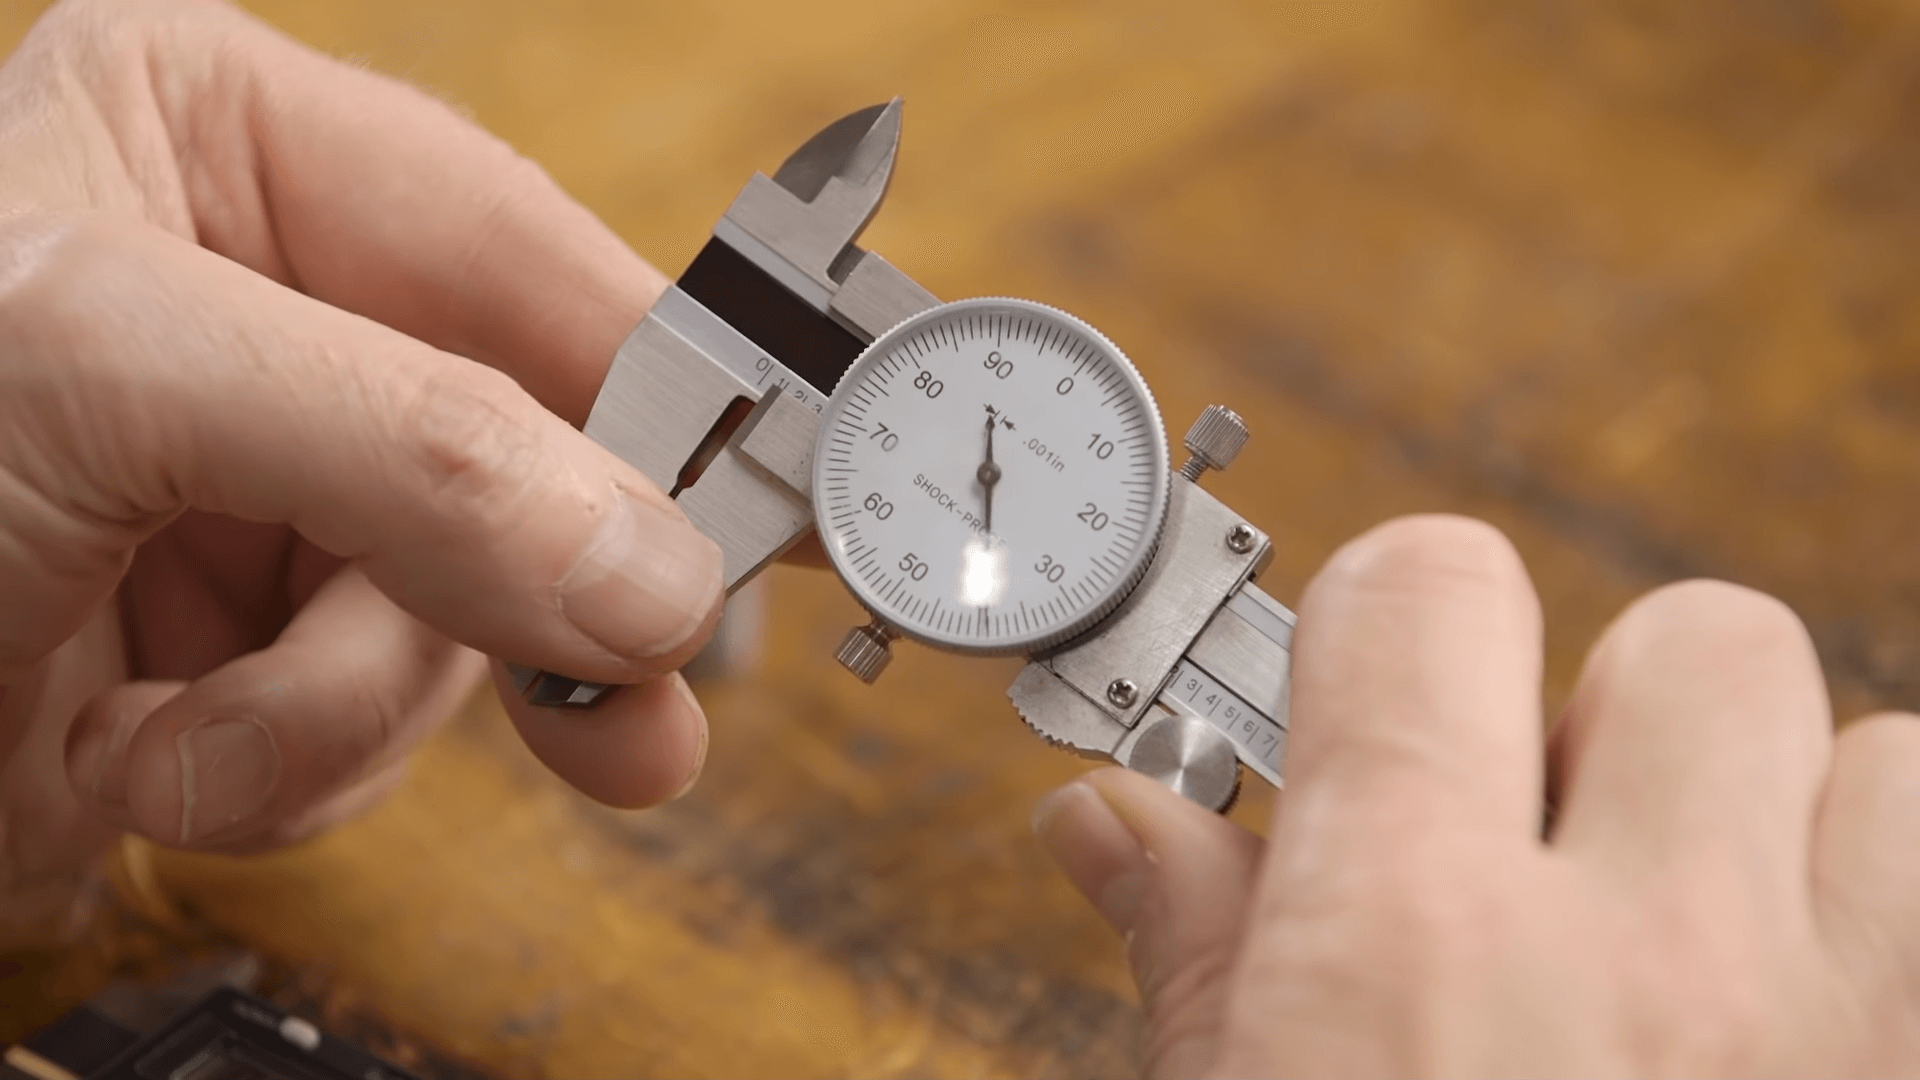 What Is A Dial Caliper Used For